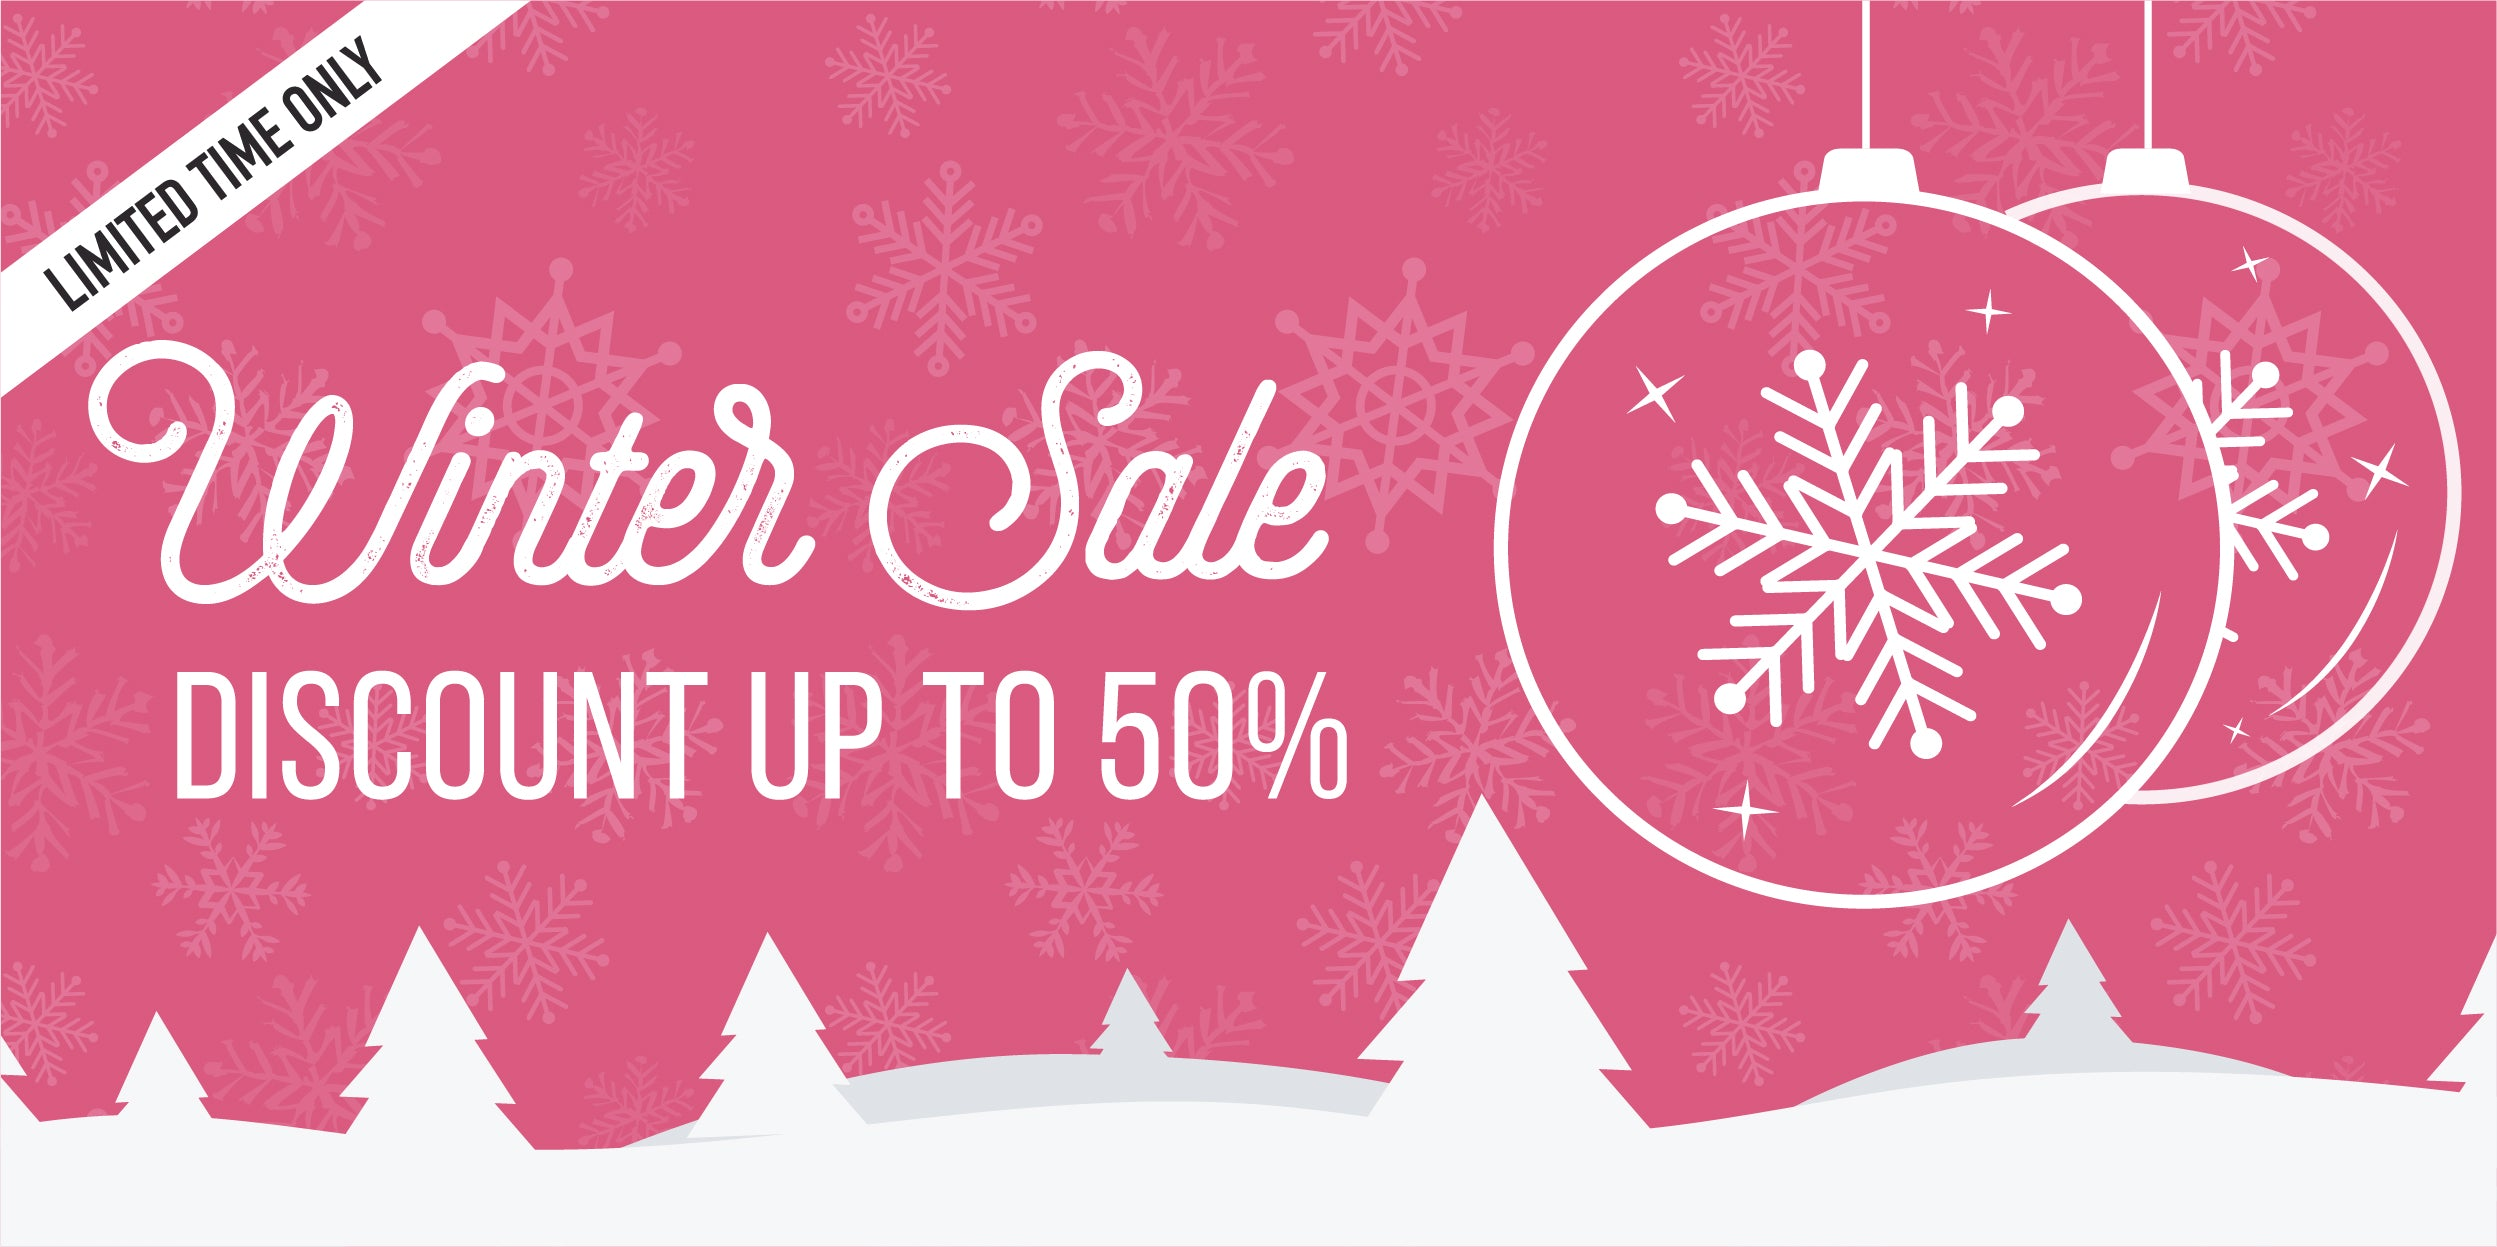 winter sale written in cursive.  discount up to 50% off.